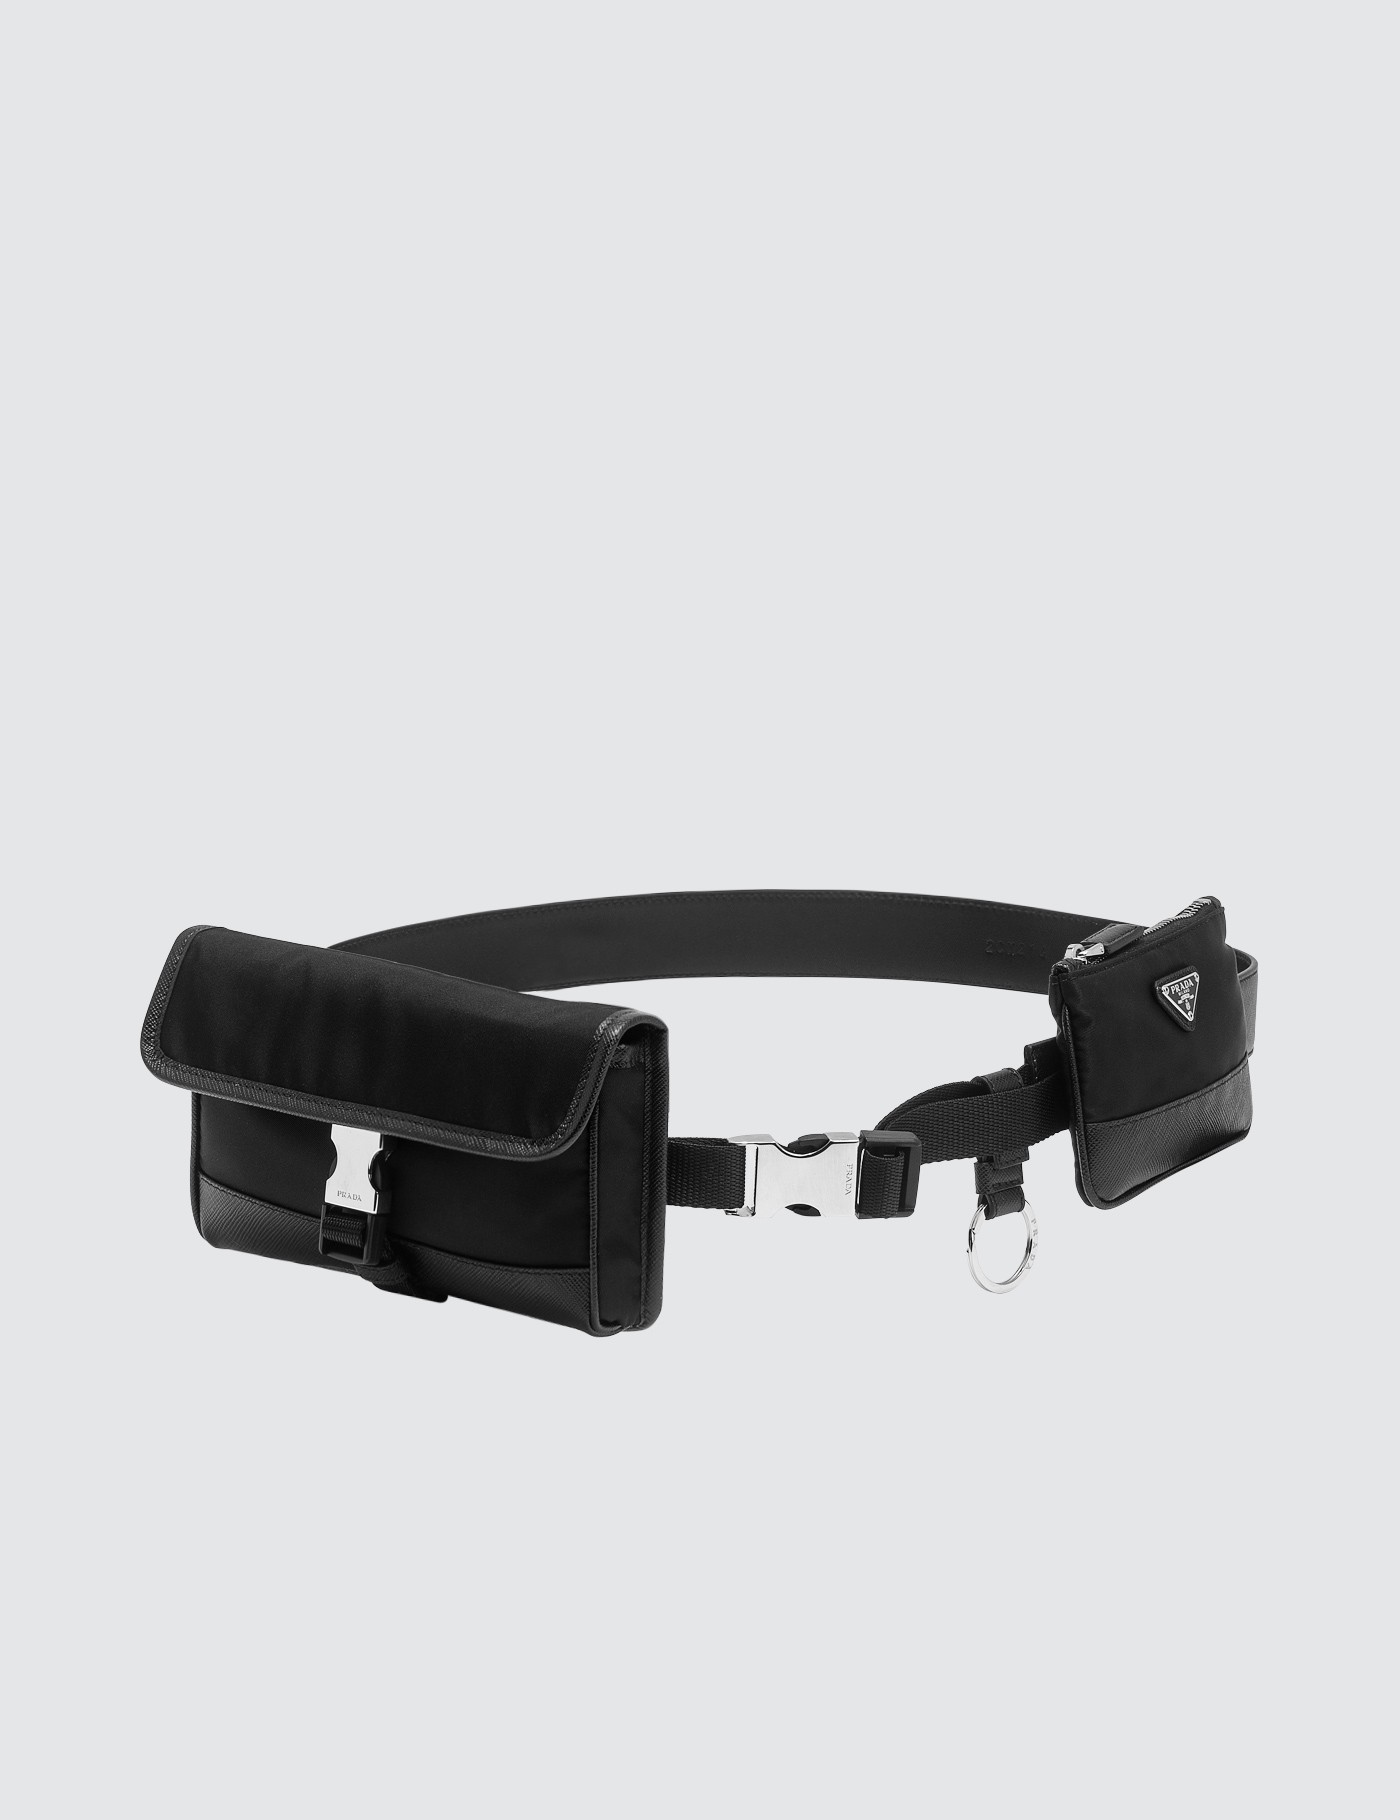 4f0035263 Buy Original Prada Saffiano Belt with pouches at Indonesia | BOBOBOBO